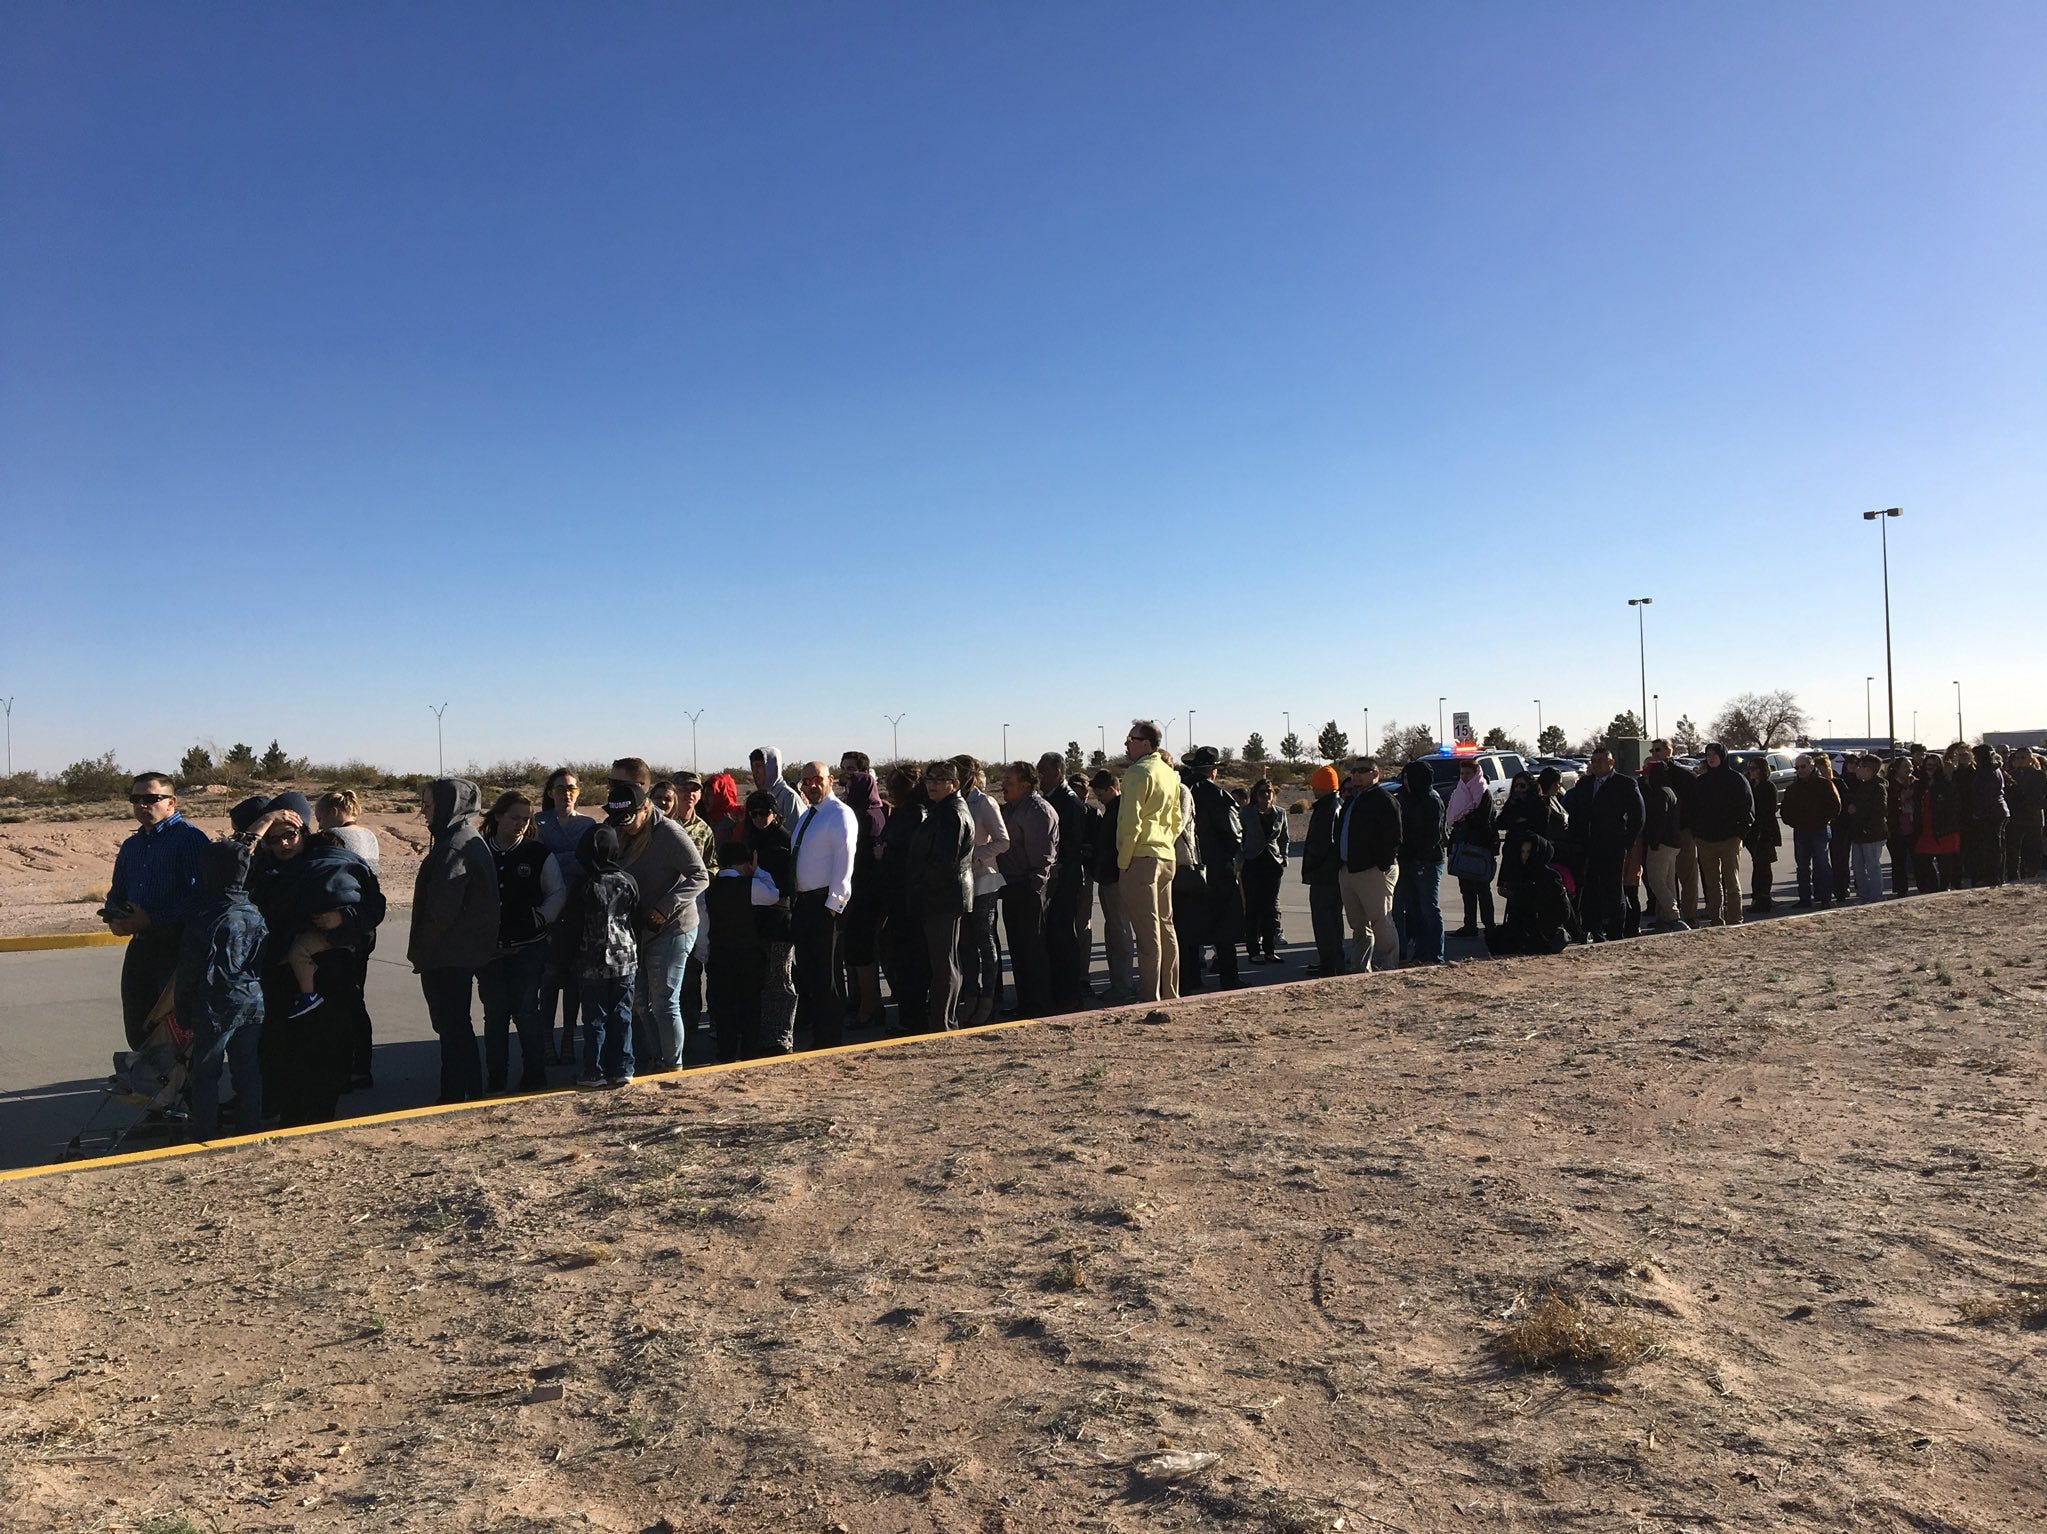 About 100 invited guests line up Monday for the arrival of President Donald Trump at the El Paso International Airport.